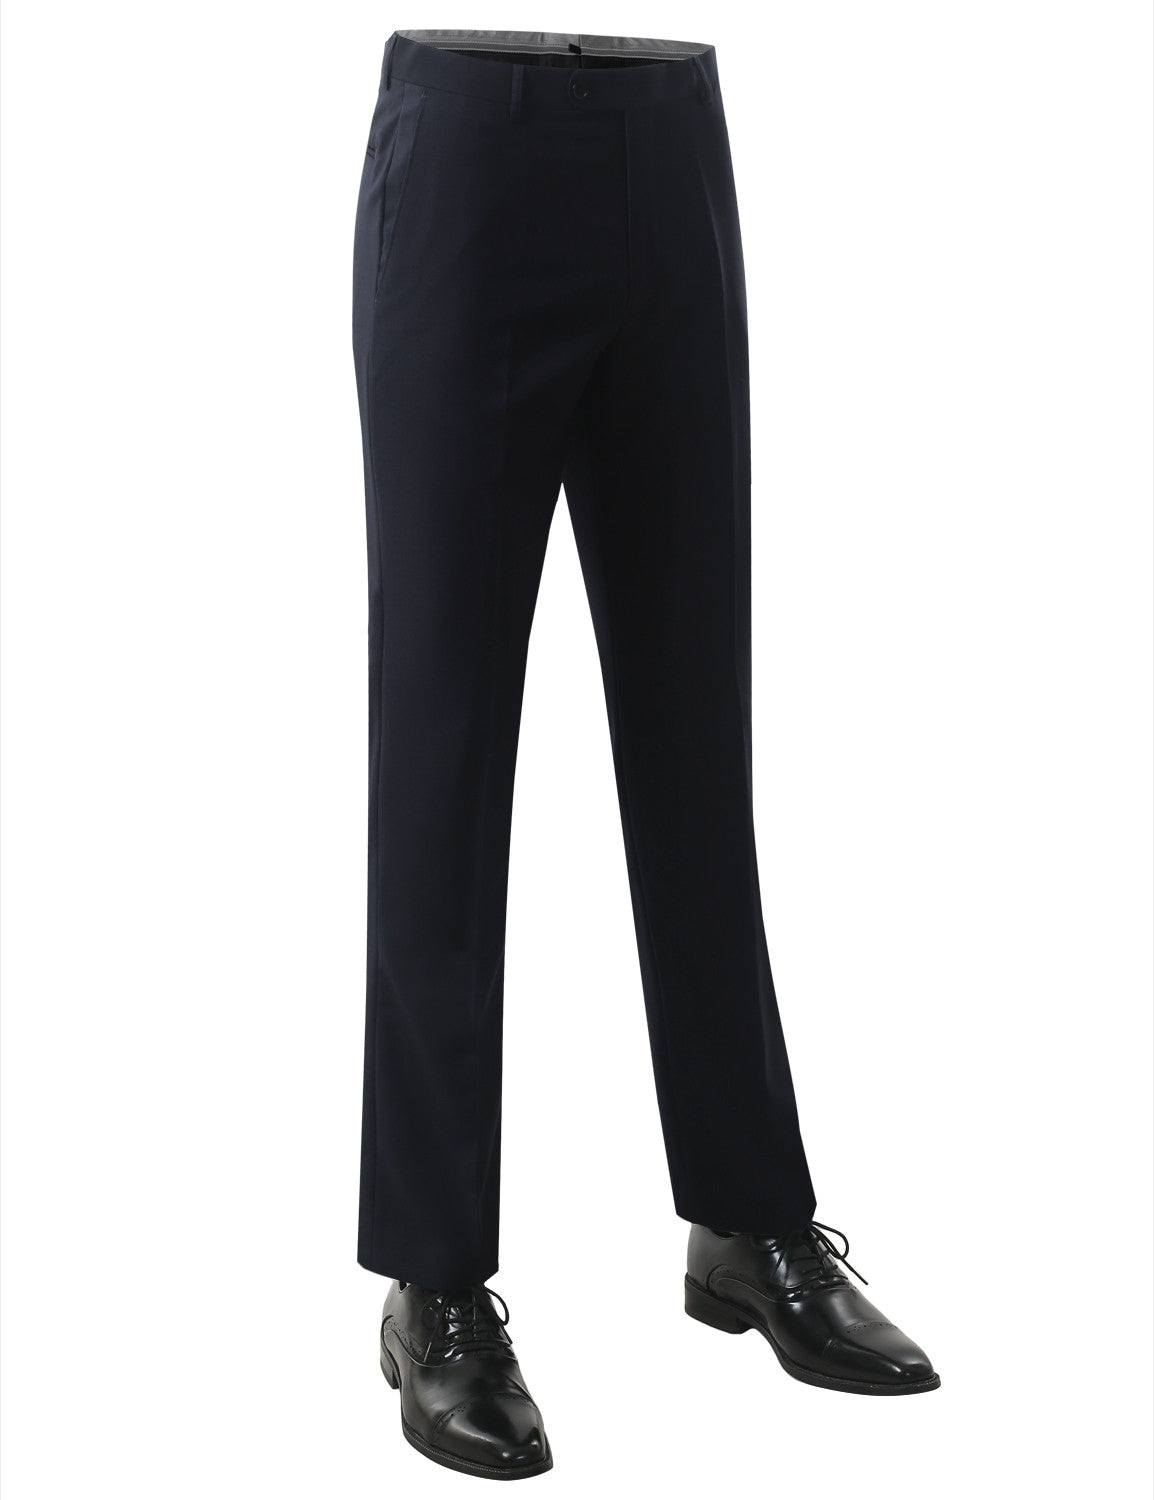 02NVY Modern Fit Flat Front Dress Trousers- MONDAYSUIT